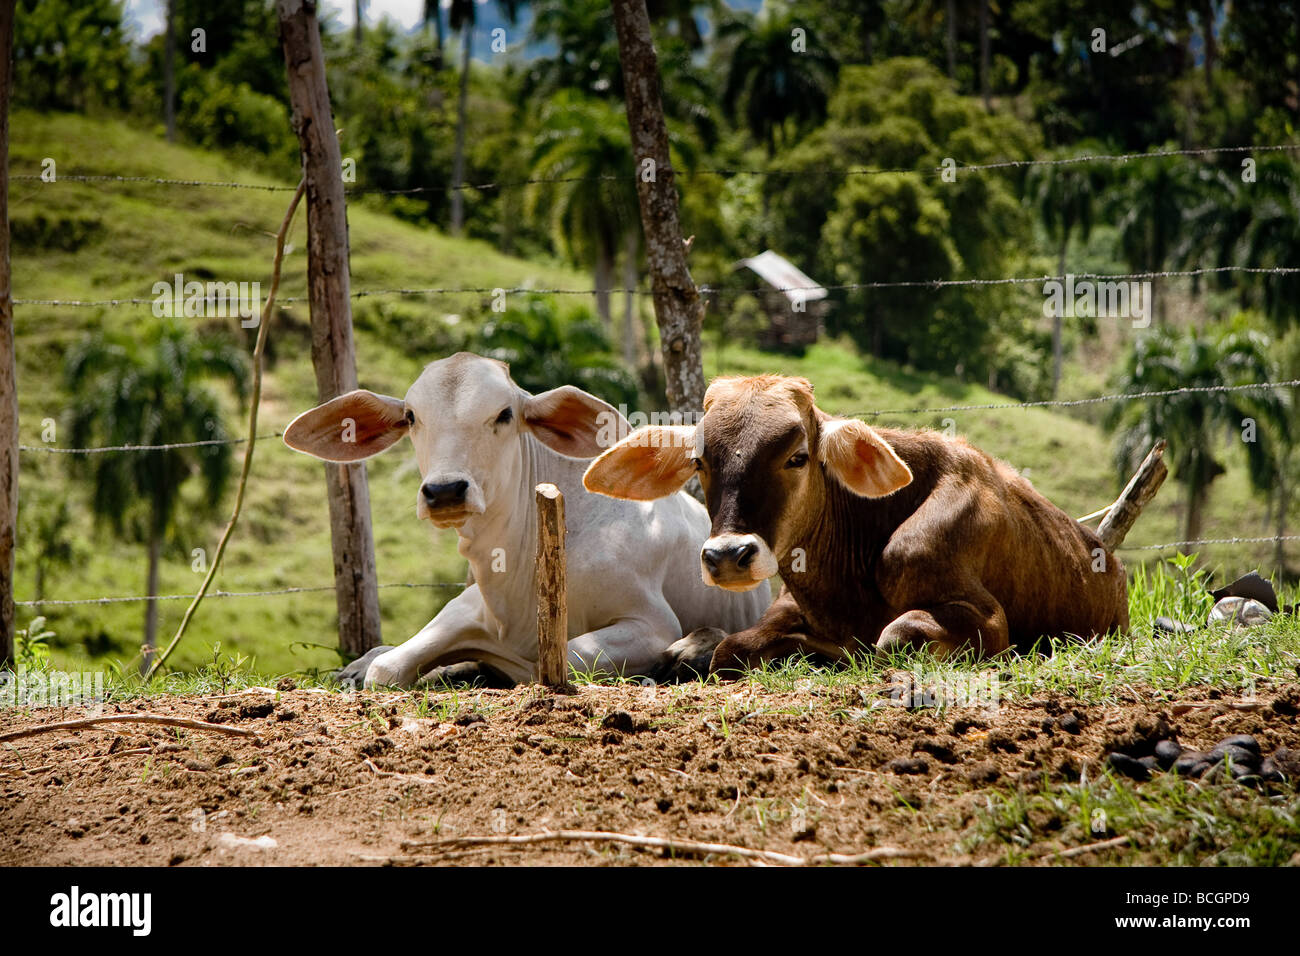 Two cows with very big ears laying down on the ground in Palo Blanco Dominican Republic - Stock Image